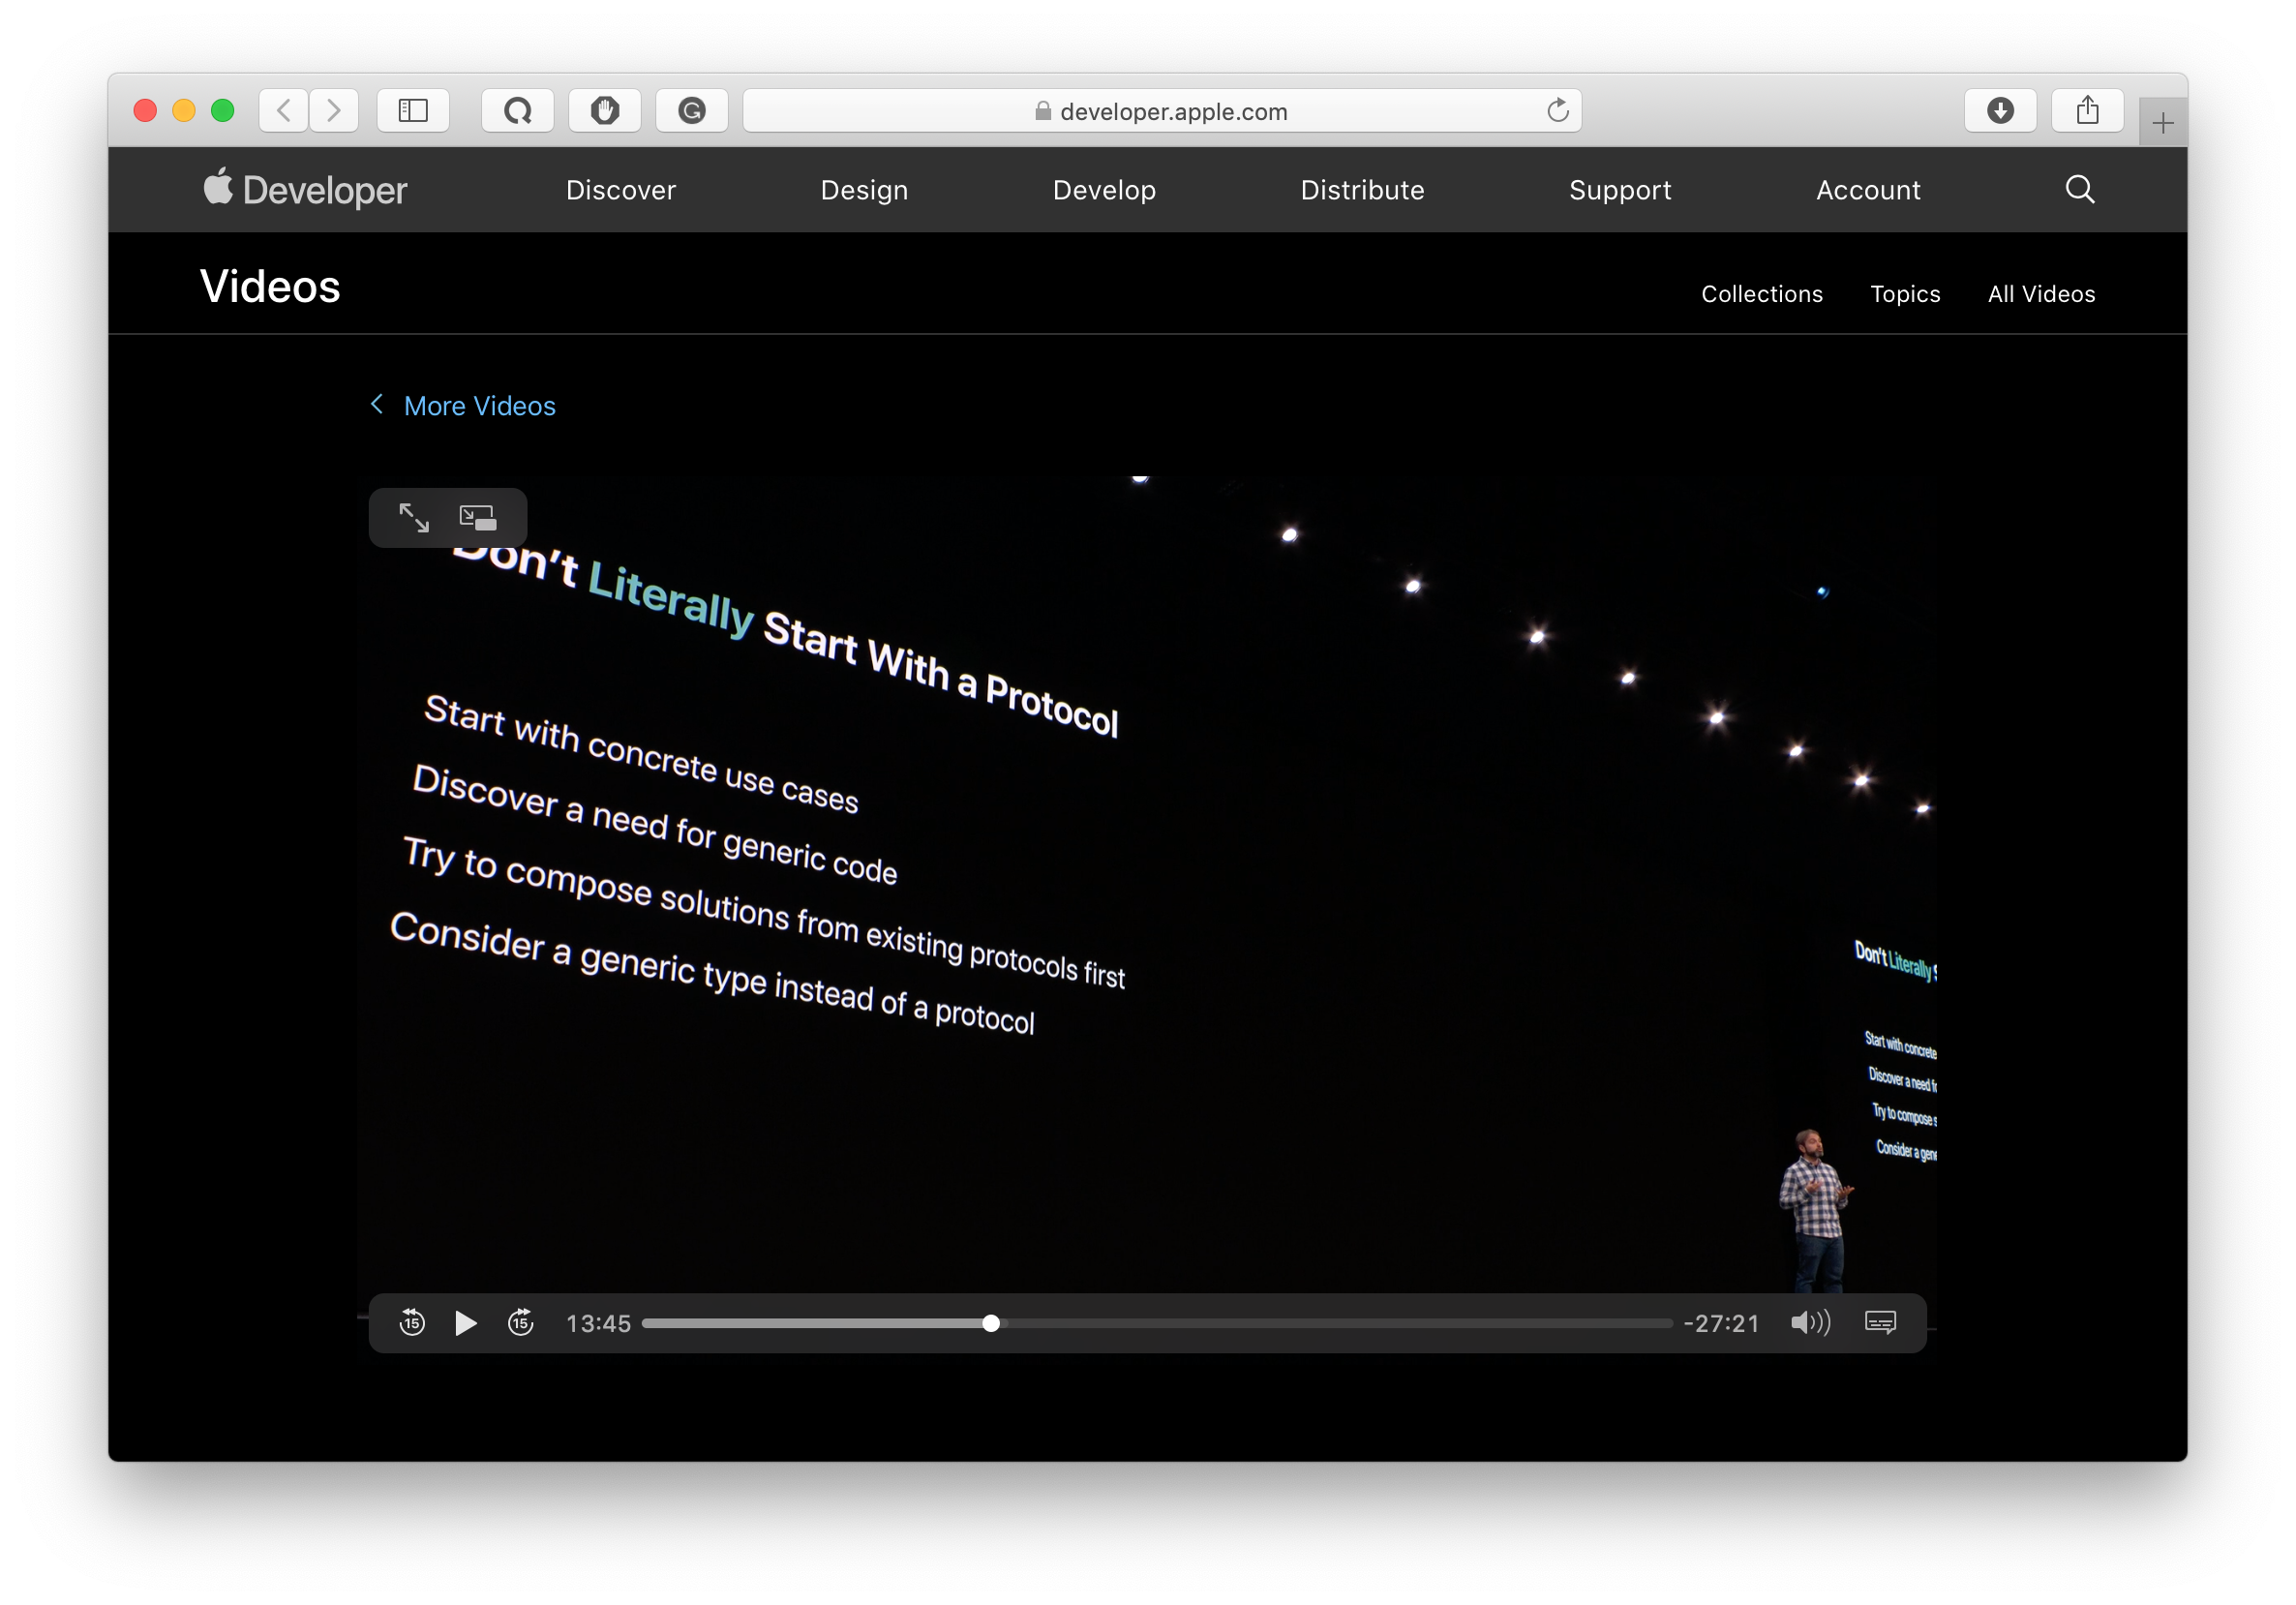 apple new recommendation to not start with a protocol from moderns swift api design WWDC 2019